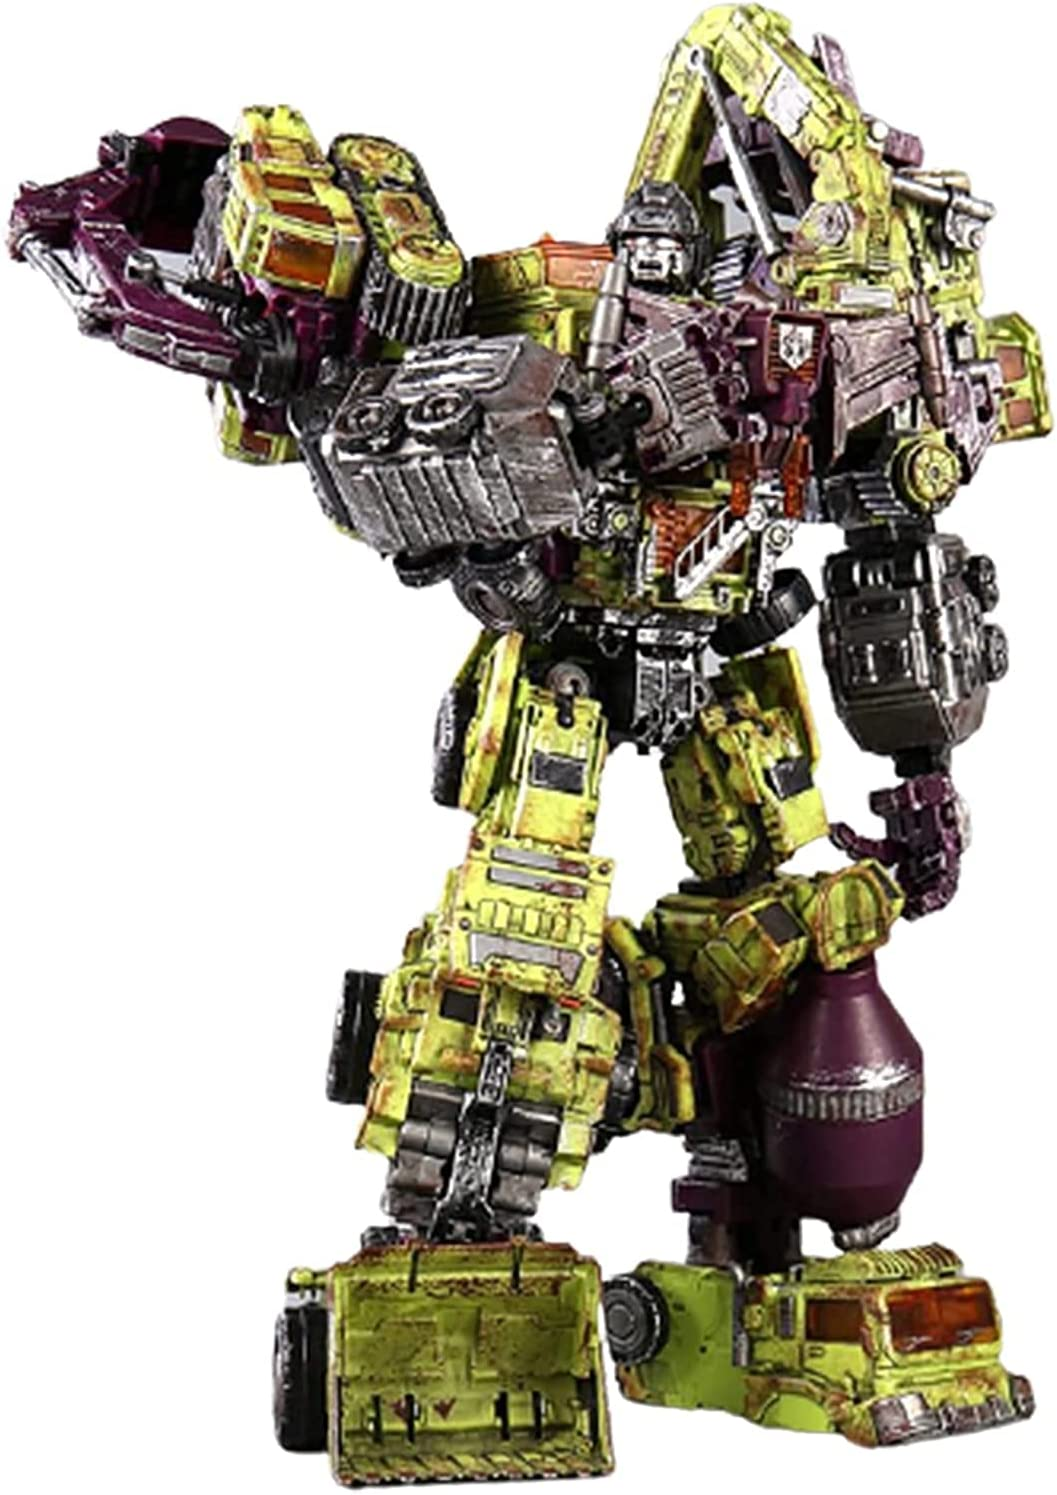 Genuine RSVPhandcrafted Trǎnsformérs Robot Toy KO Large Transfo Seattle Mall 6-in-1